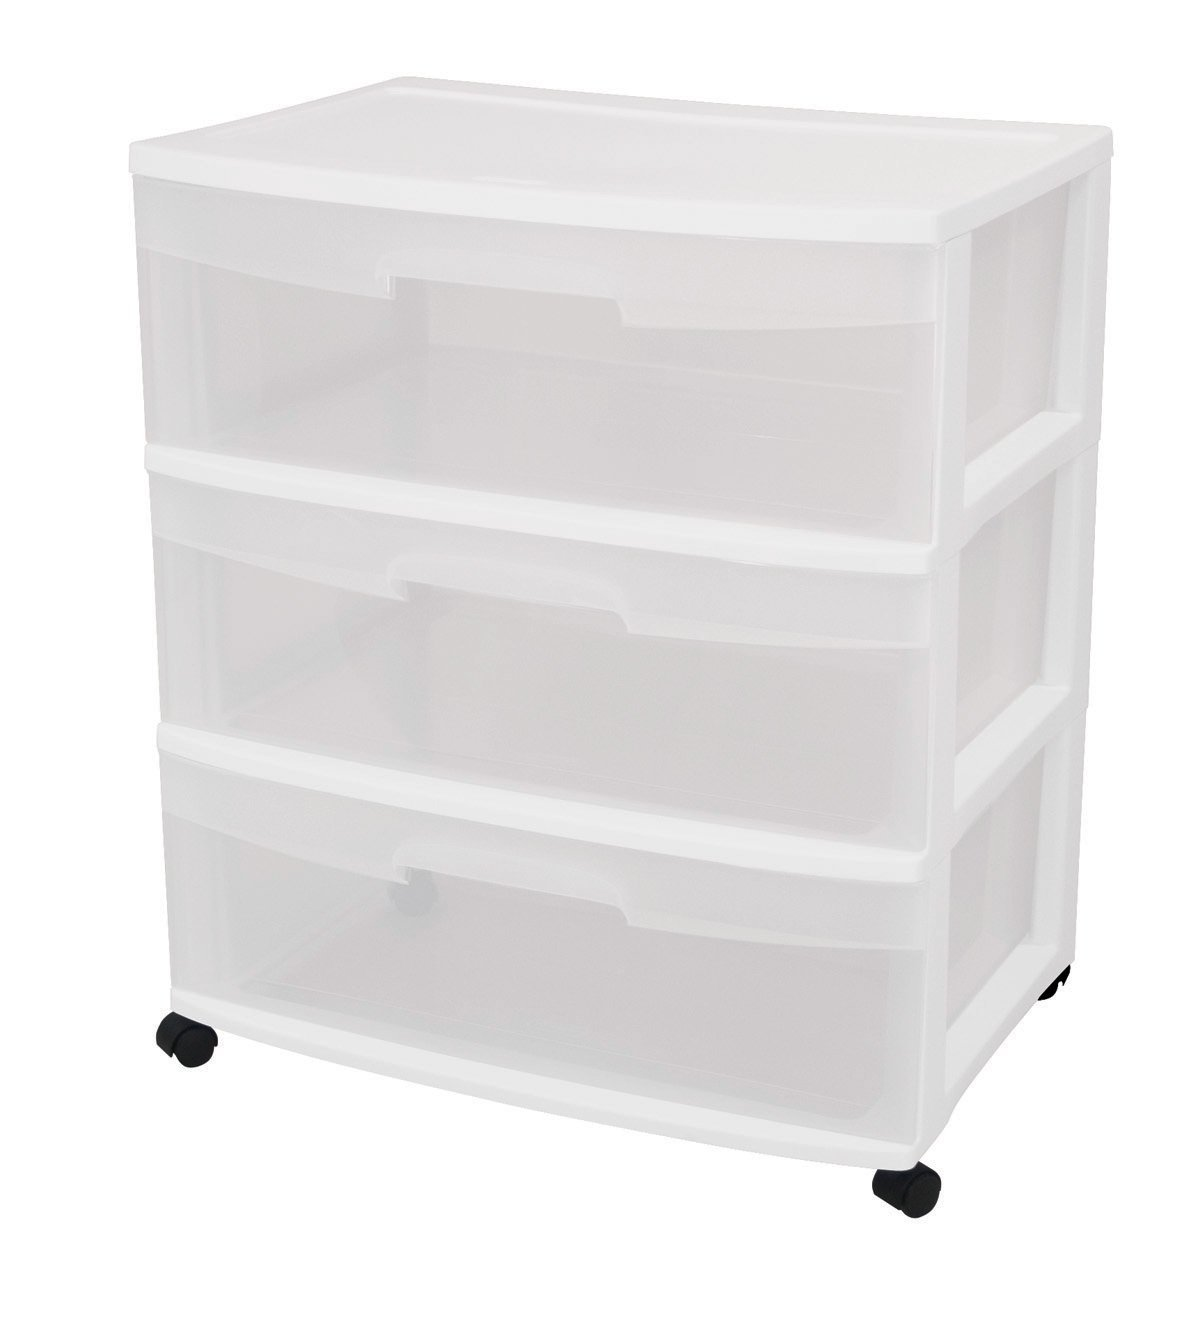 Sterilite 3-Drawer Wide Cart with See-Through Drawers, White